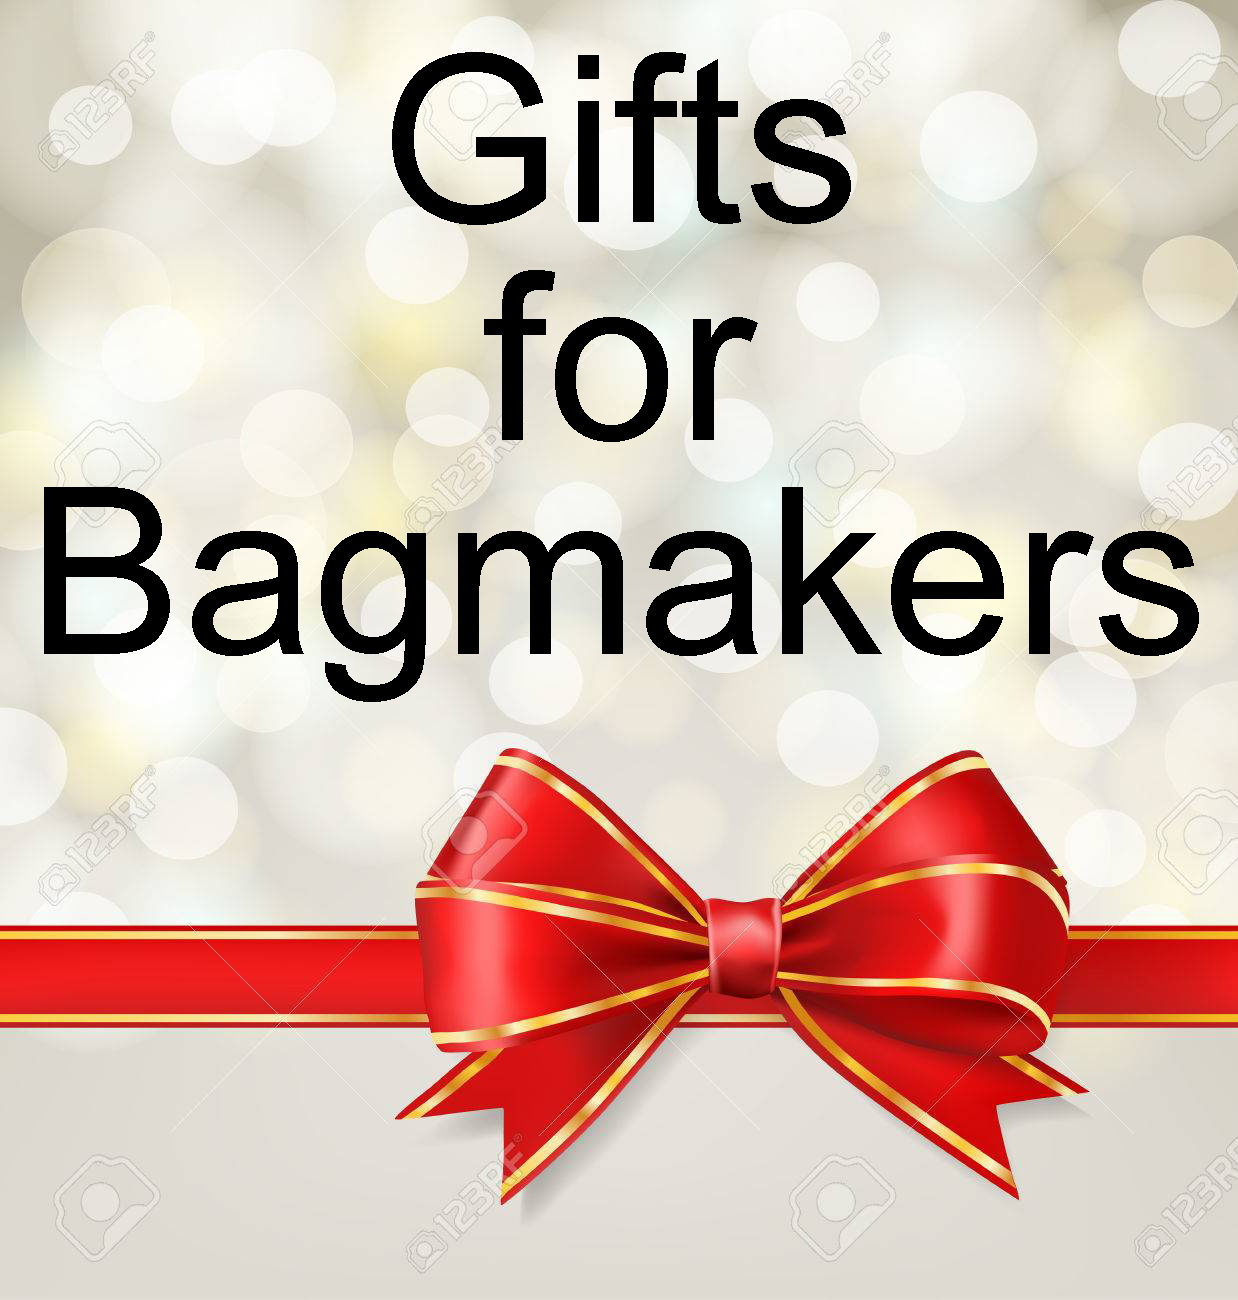 Gifts for Bagmakers